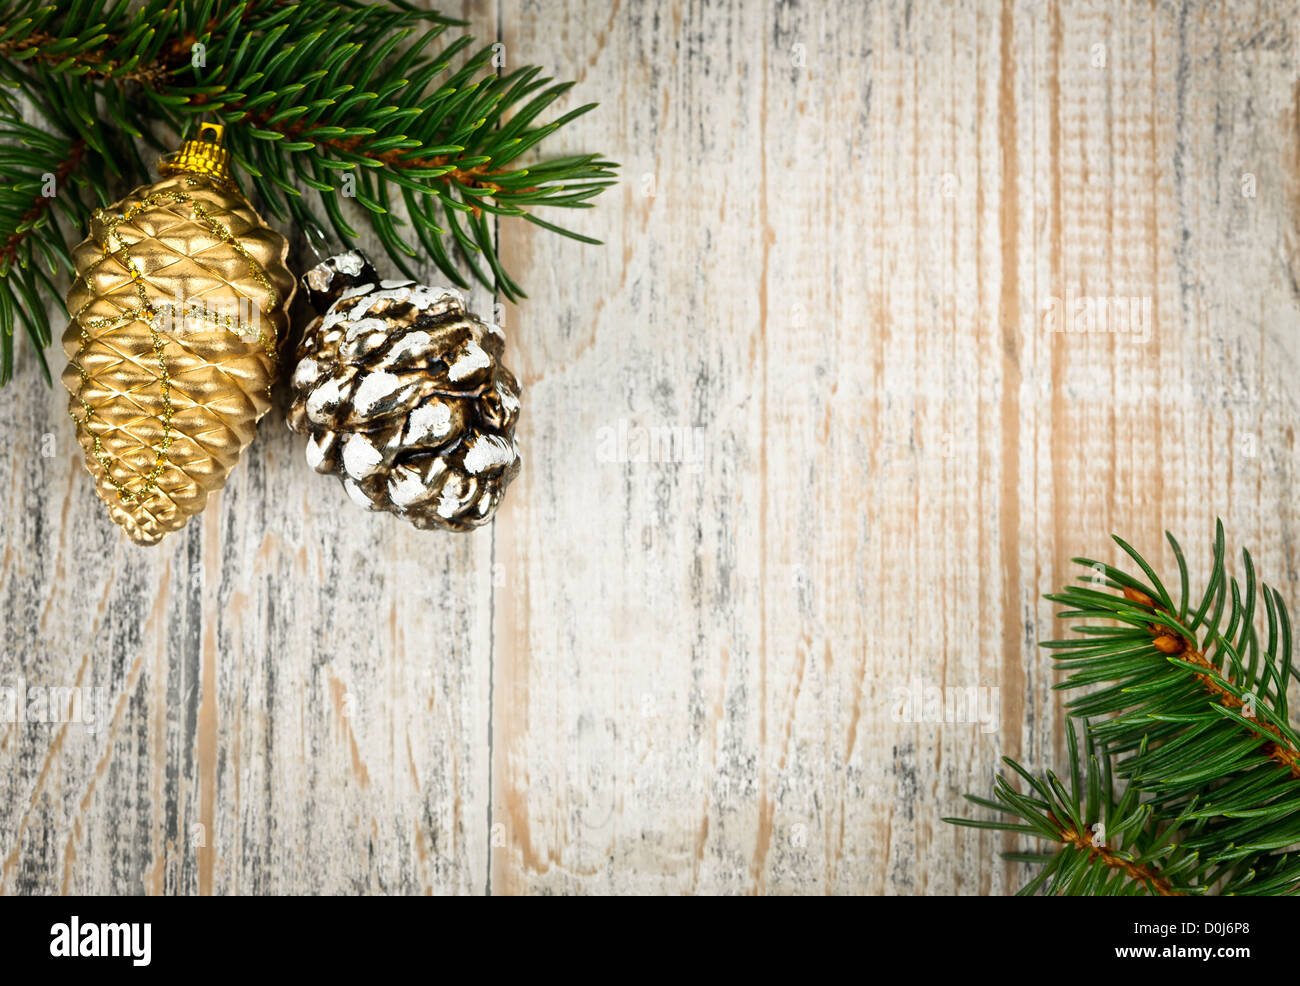 Christmas golden balls and pine cone on spruce branch with wooden background - Stock Image